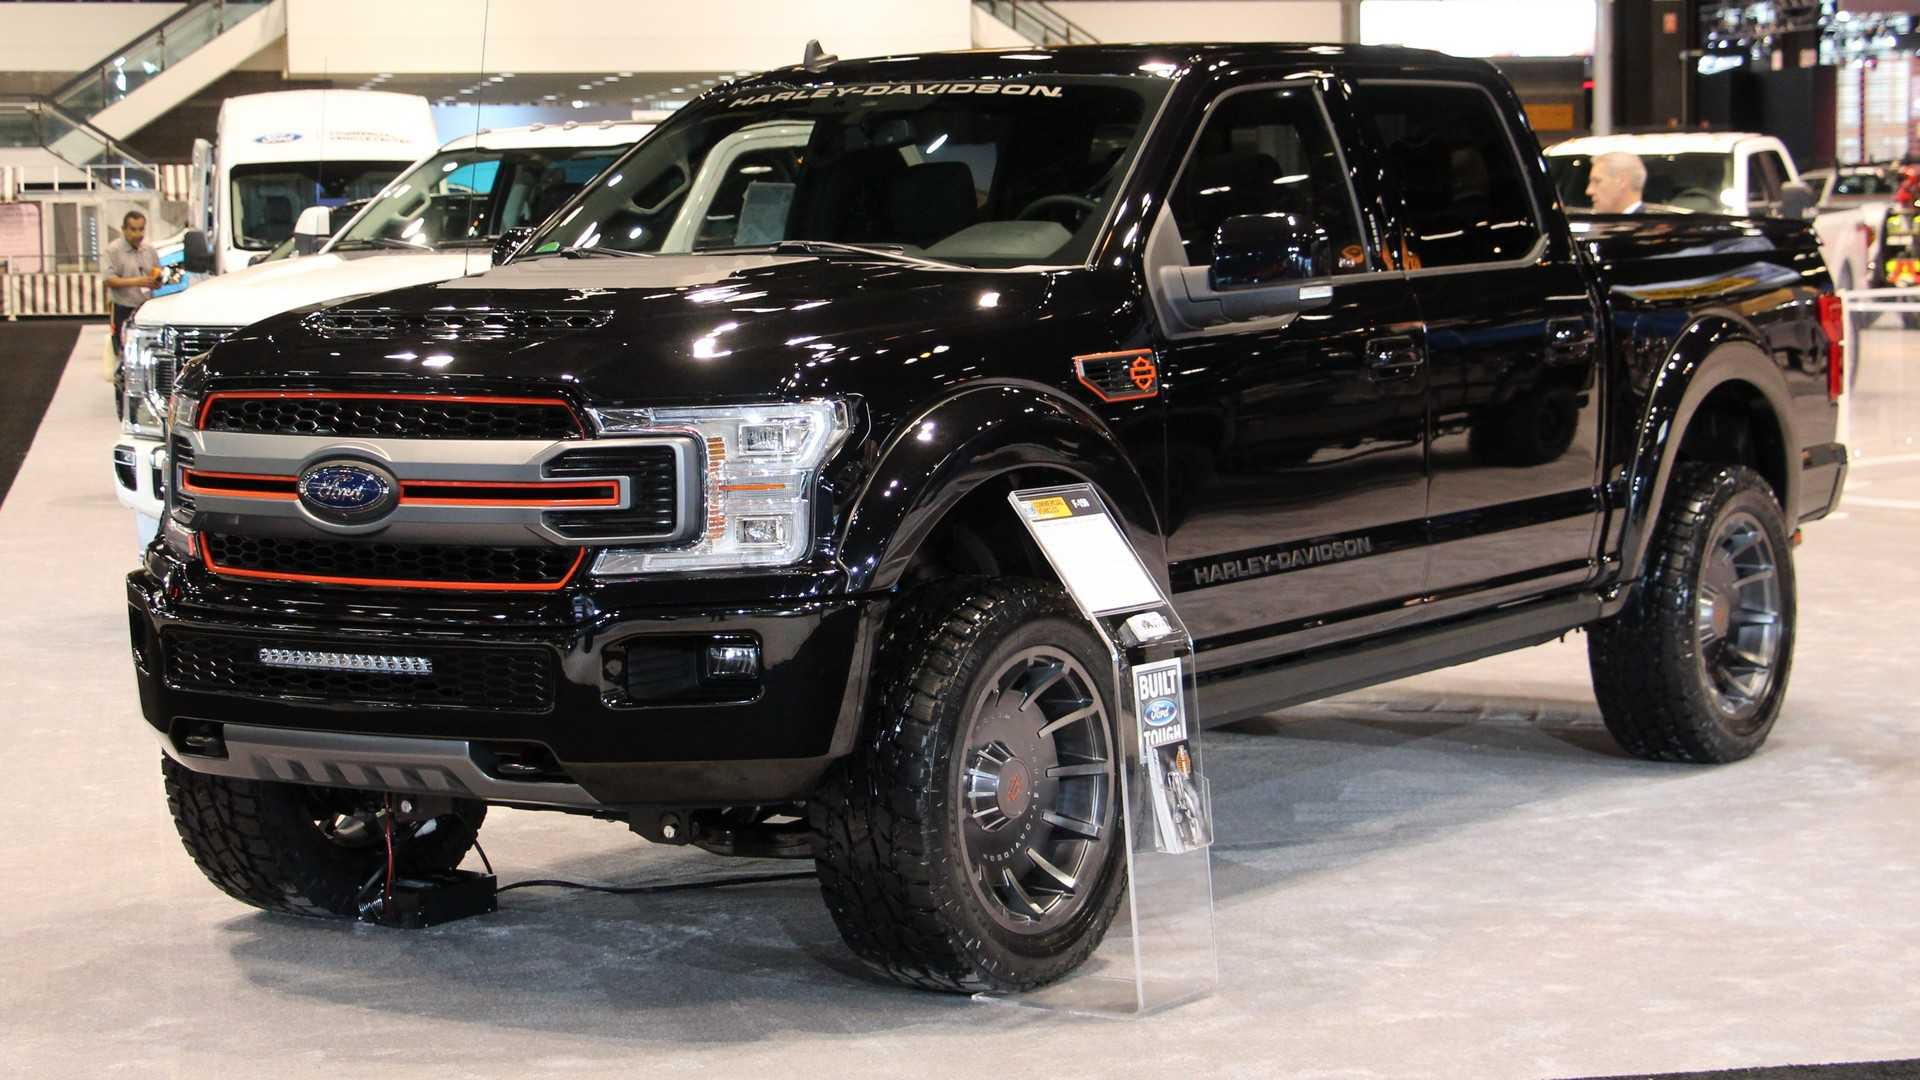 Harley et partenariat Jeep. Piège ? - Page 10 2019-ford-f-150-harley-davidson-edition